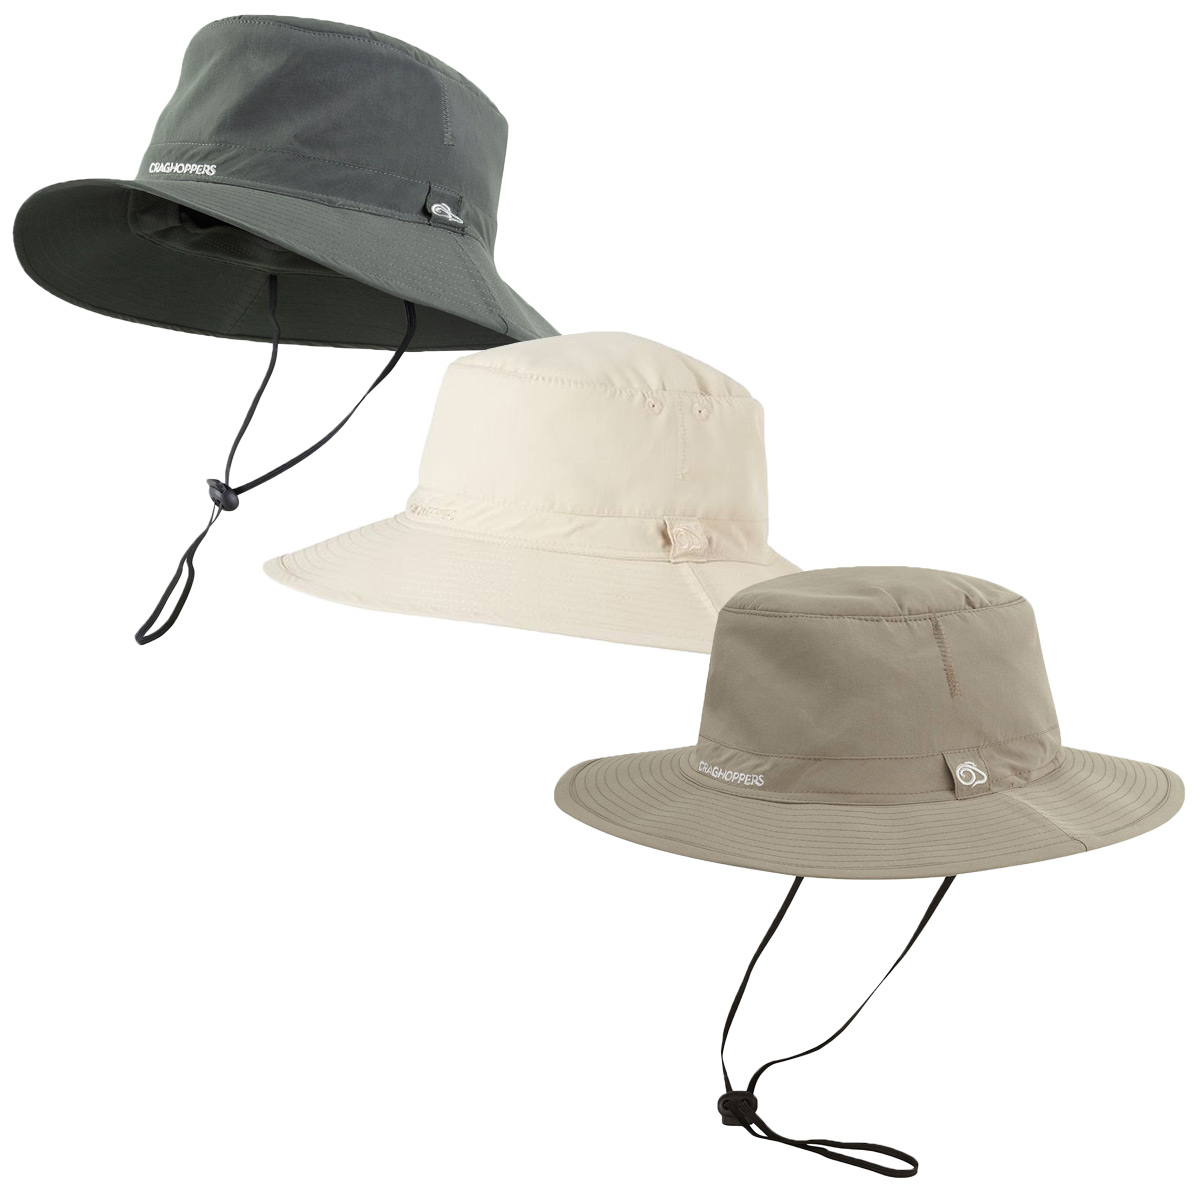 05278a3adb8 Details about Craghoppers Unisex NosiLife Solar Shield Adjustable UPF 50+ Outback  Hat